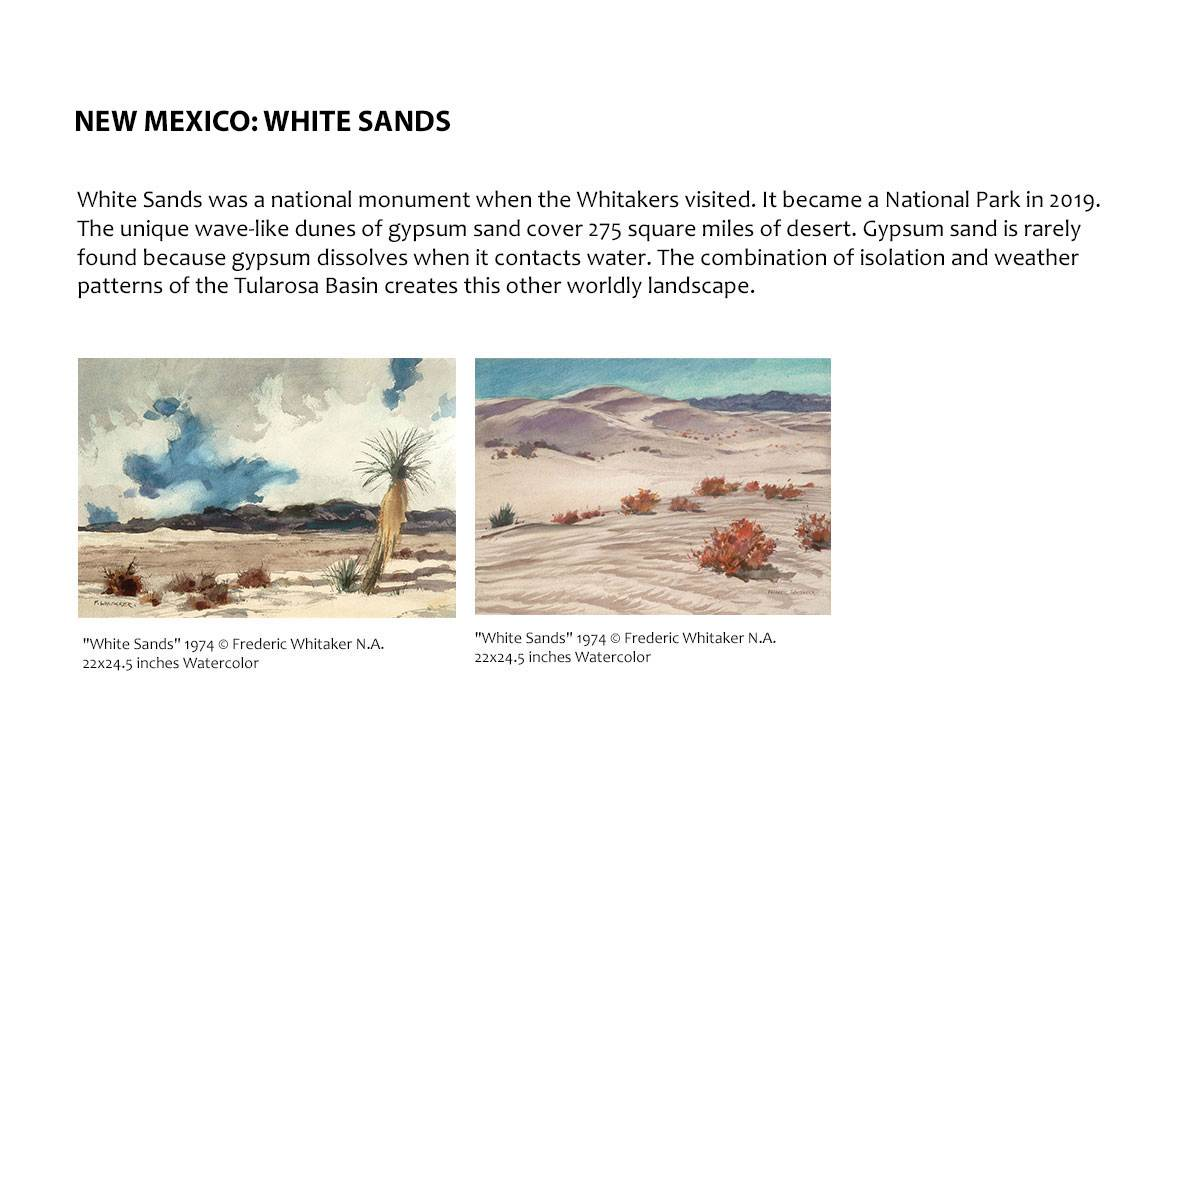 New Mexico: White Sands